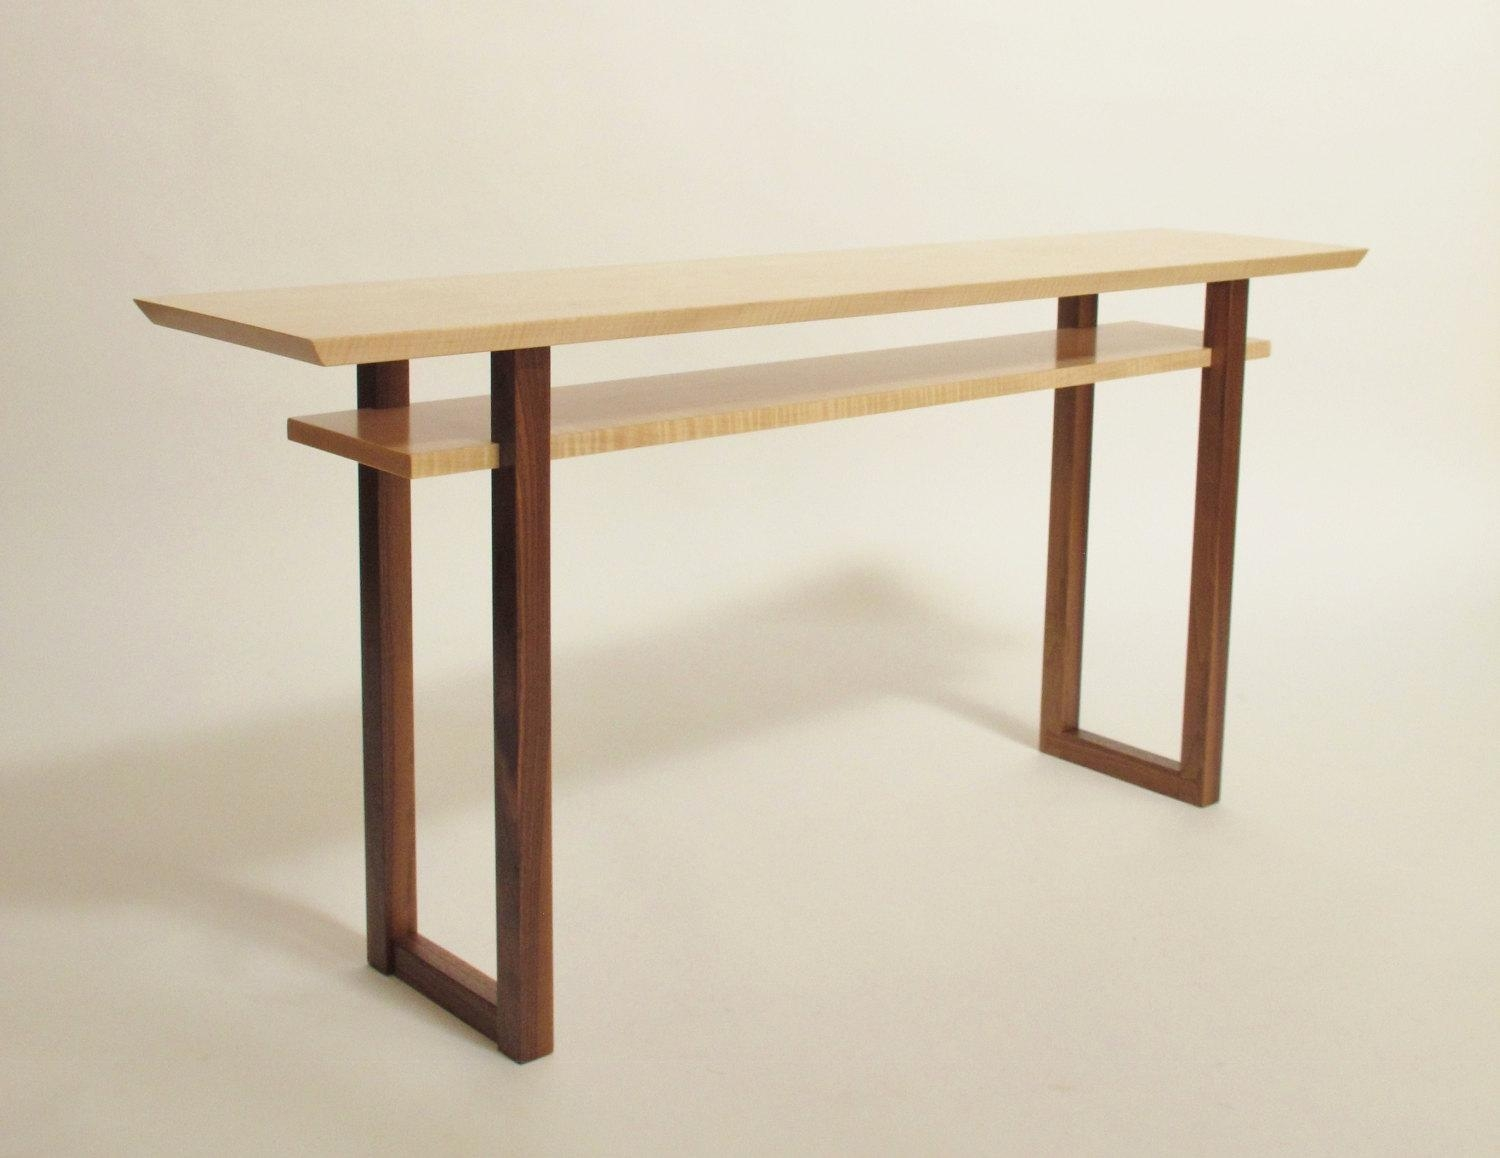 Contemporary Long Low Console Table: Narrow Sofa Table Mid Within Low Sofa Tables (Image 6 of 20)